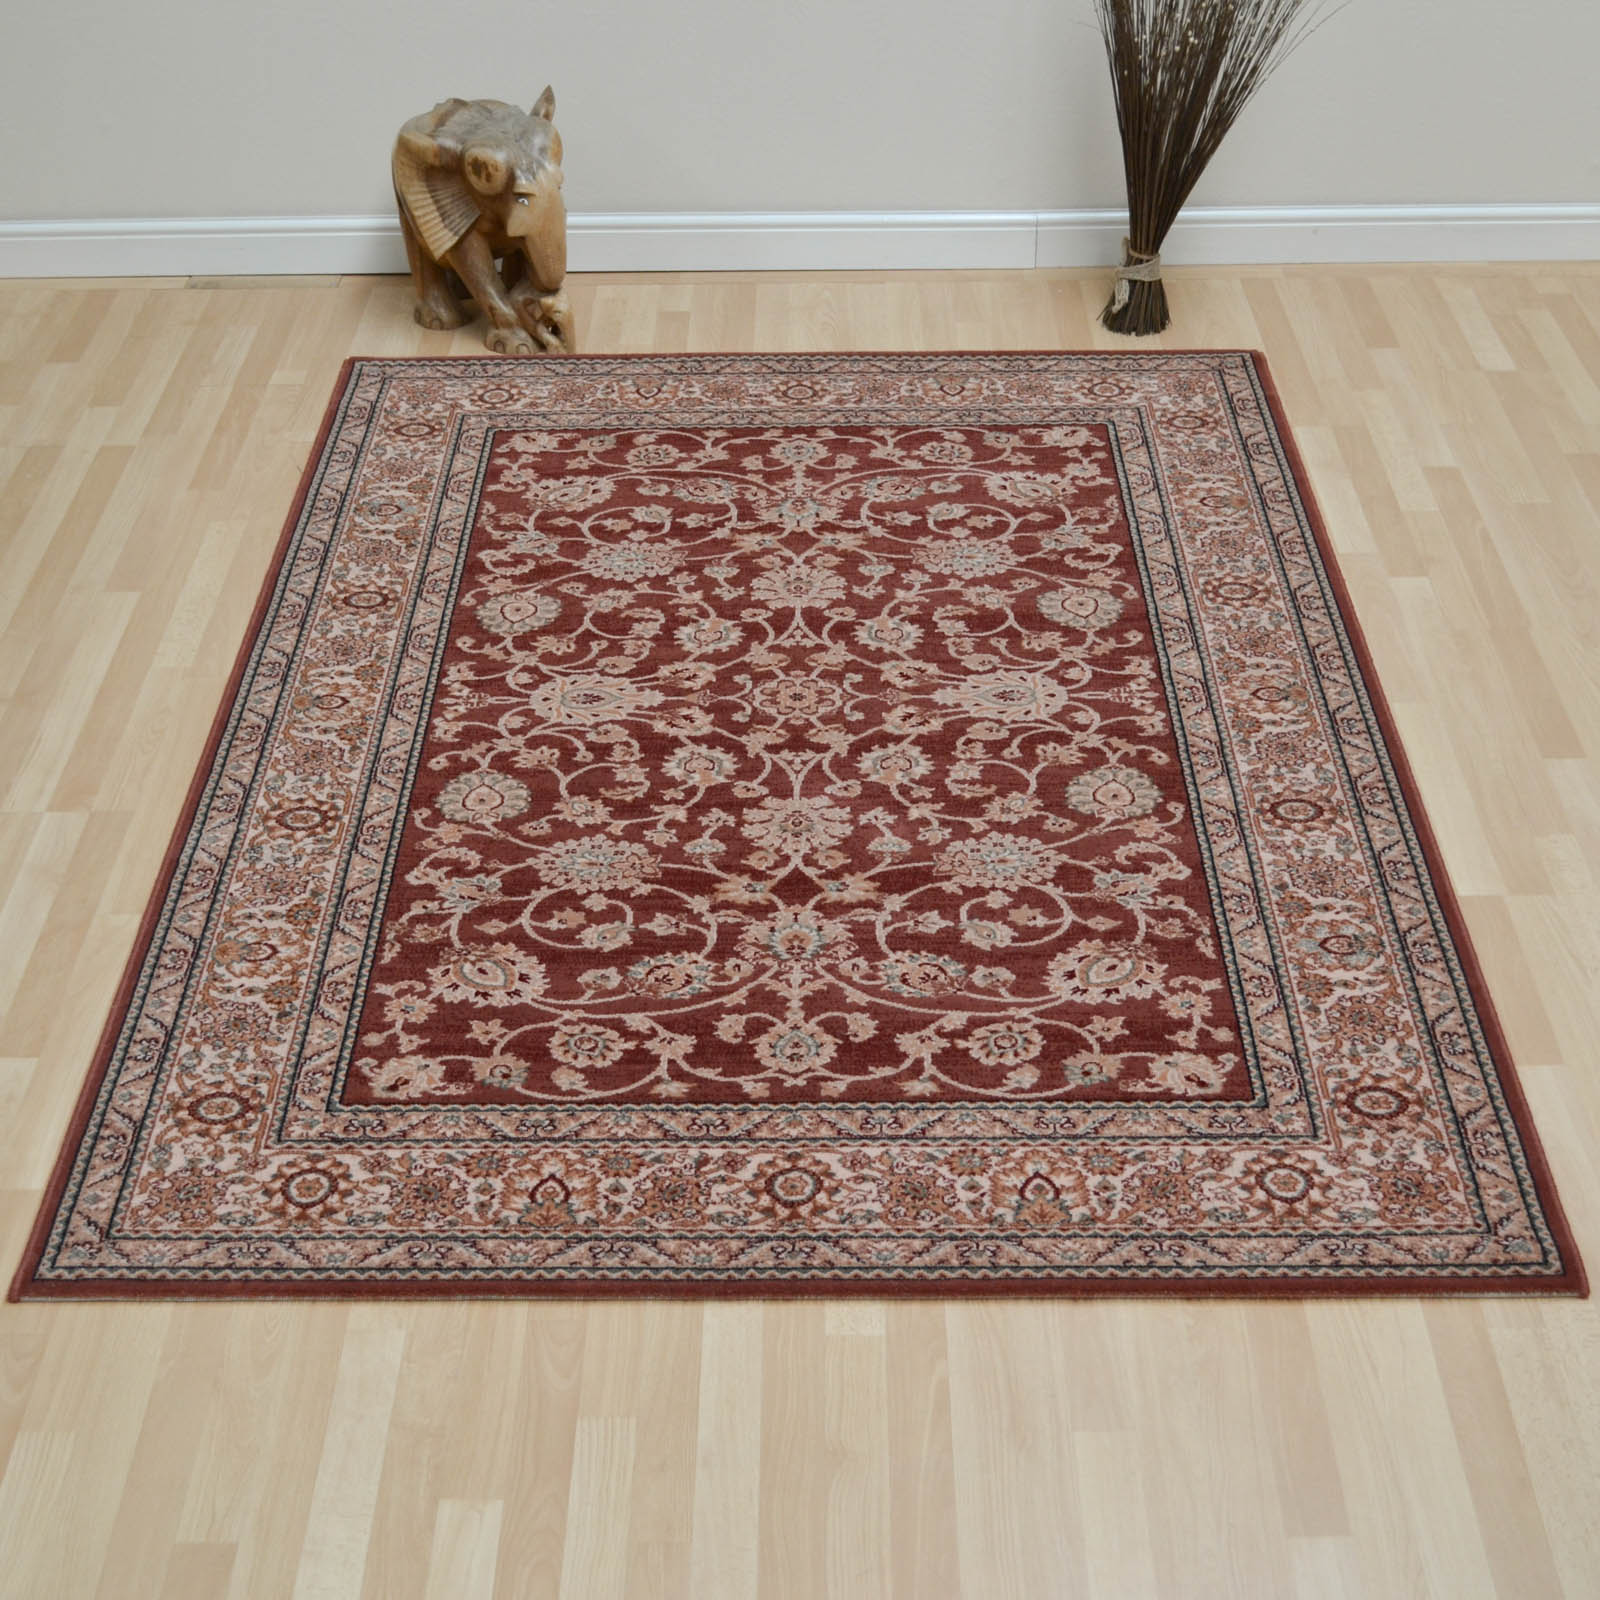 Lano Royal Rugs 1637 525 in Rose and Beige